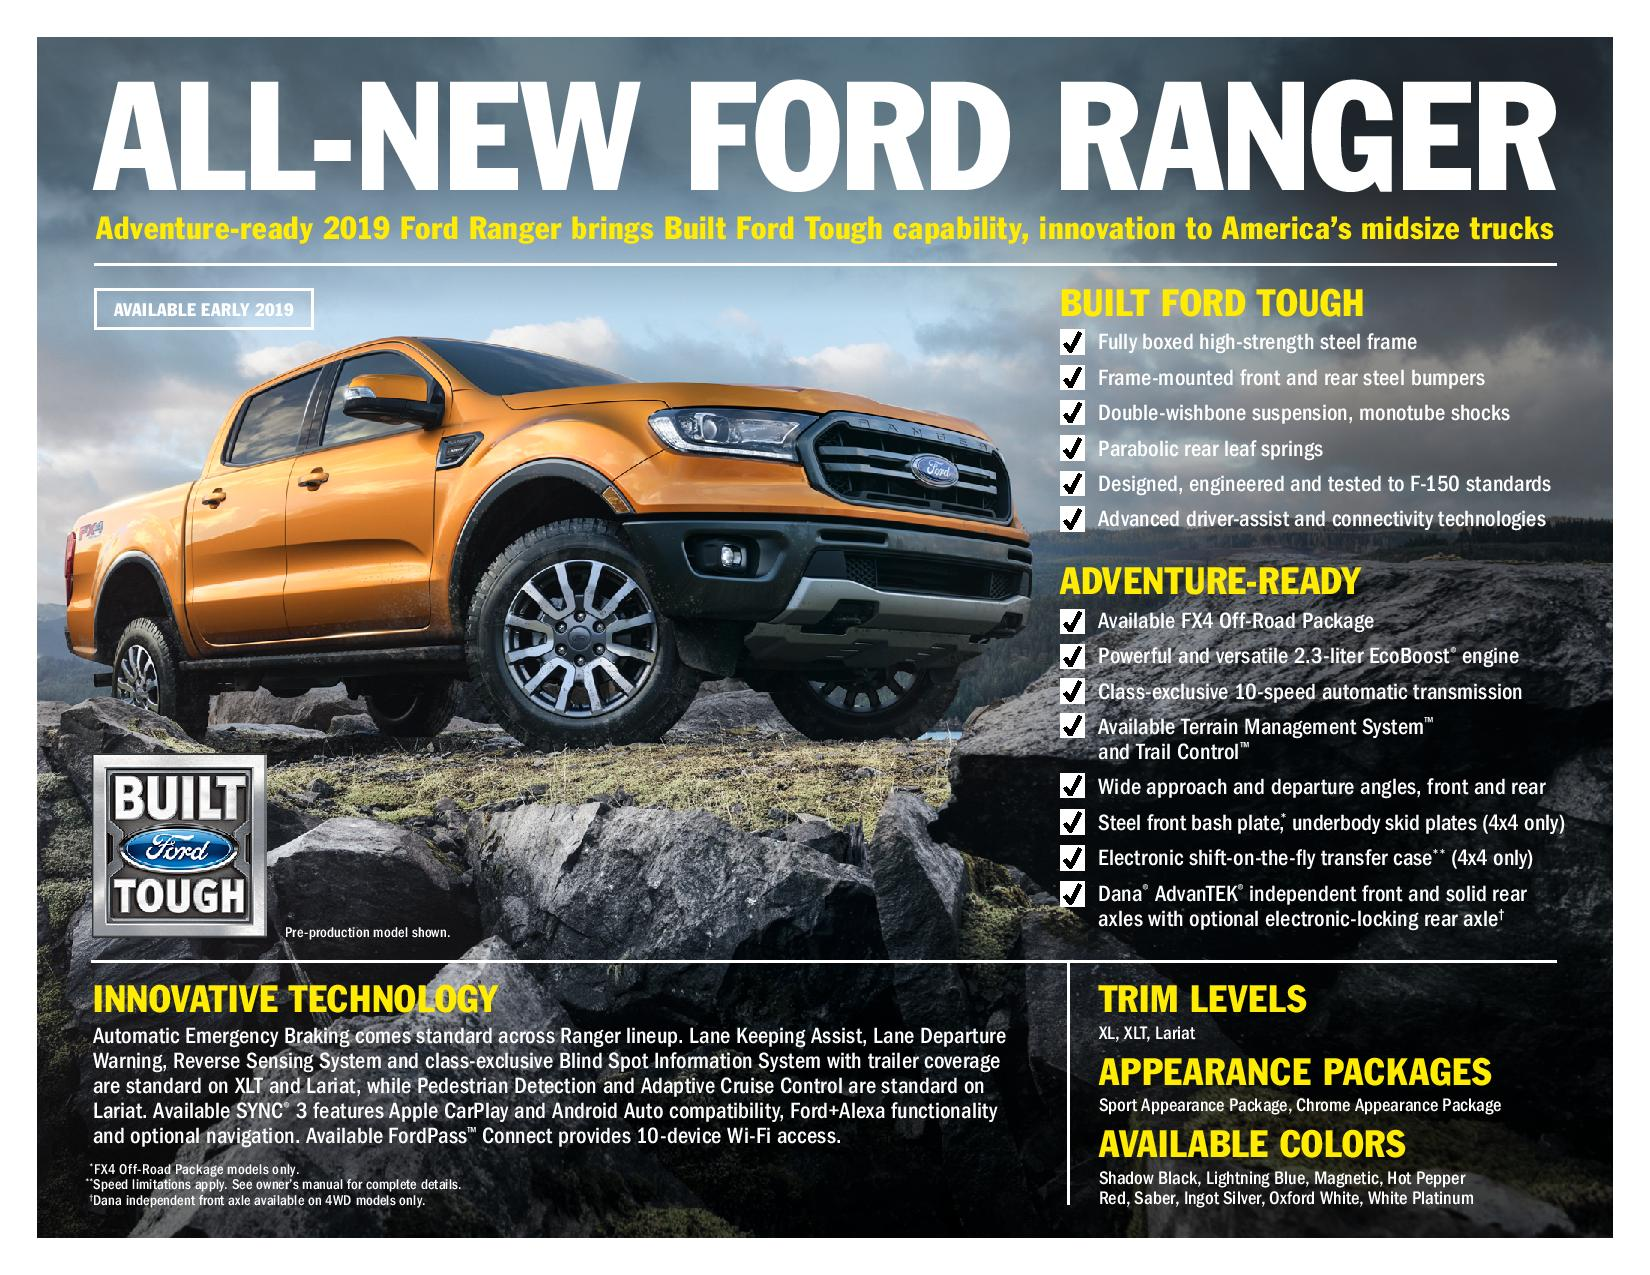 Ford reveals facelifted Ranger in United States  guise